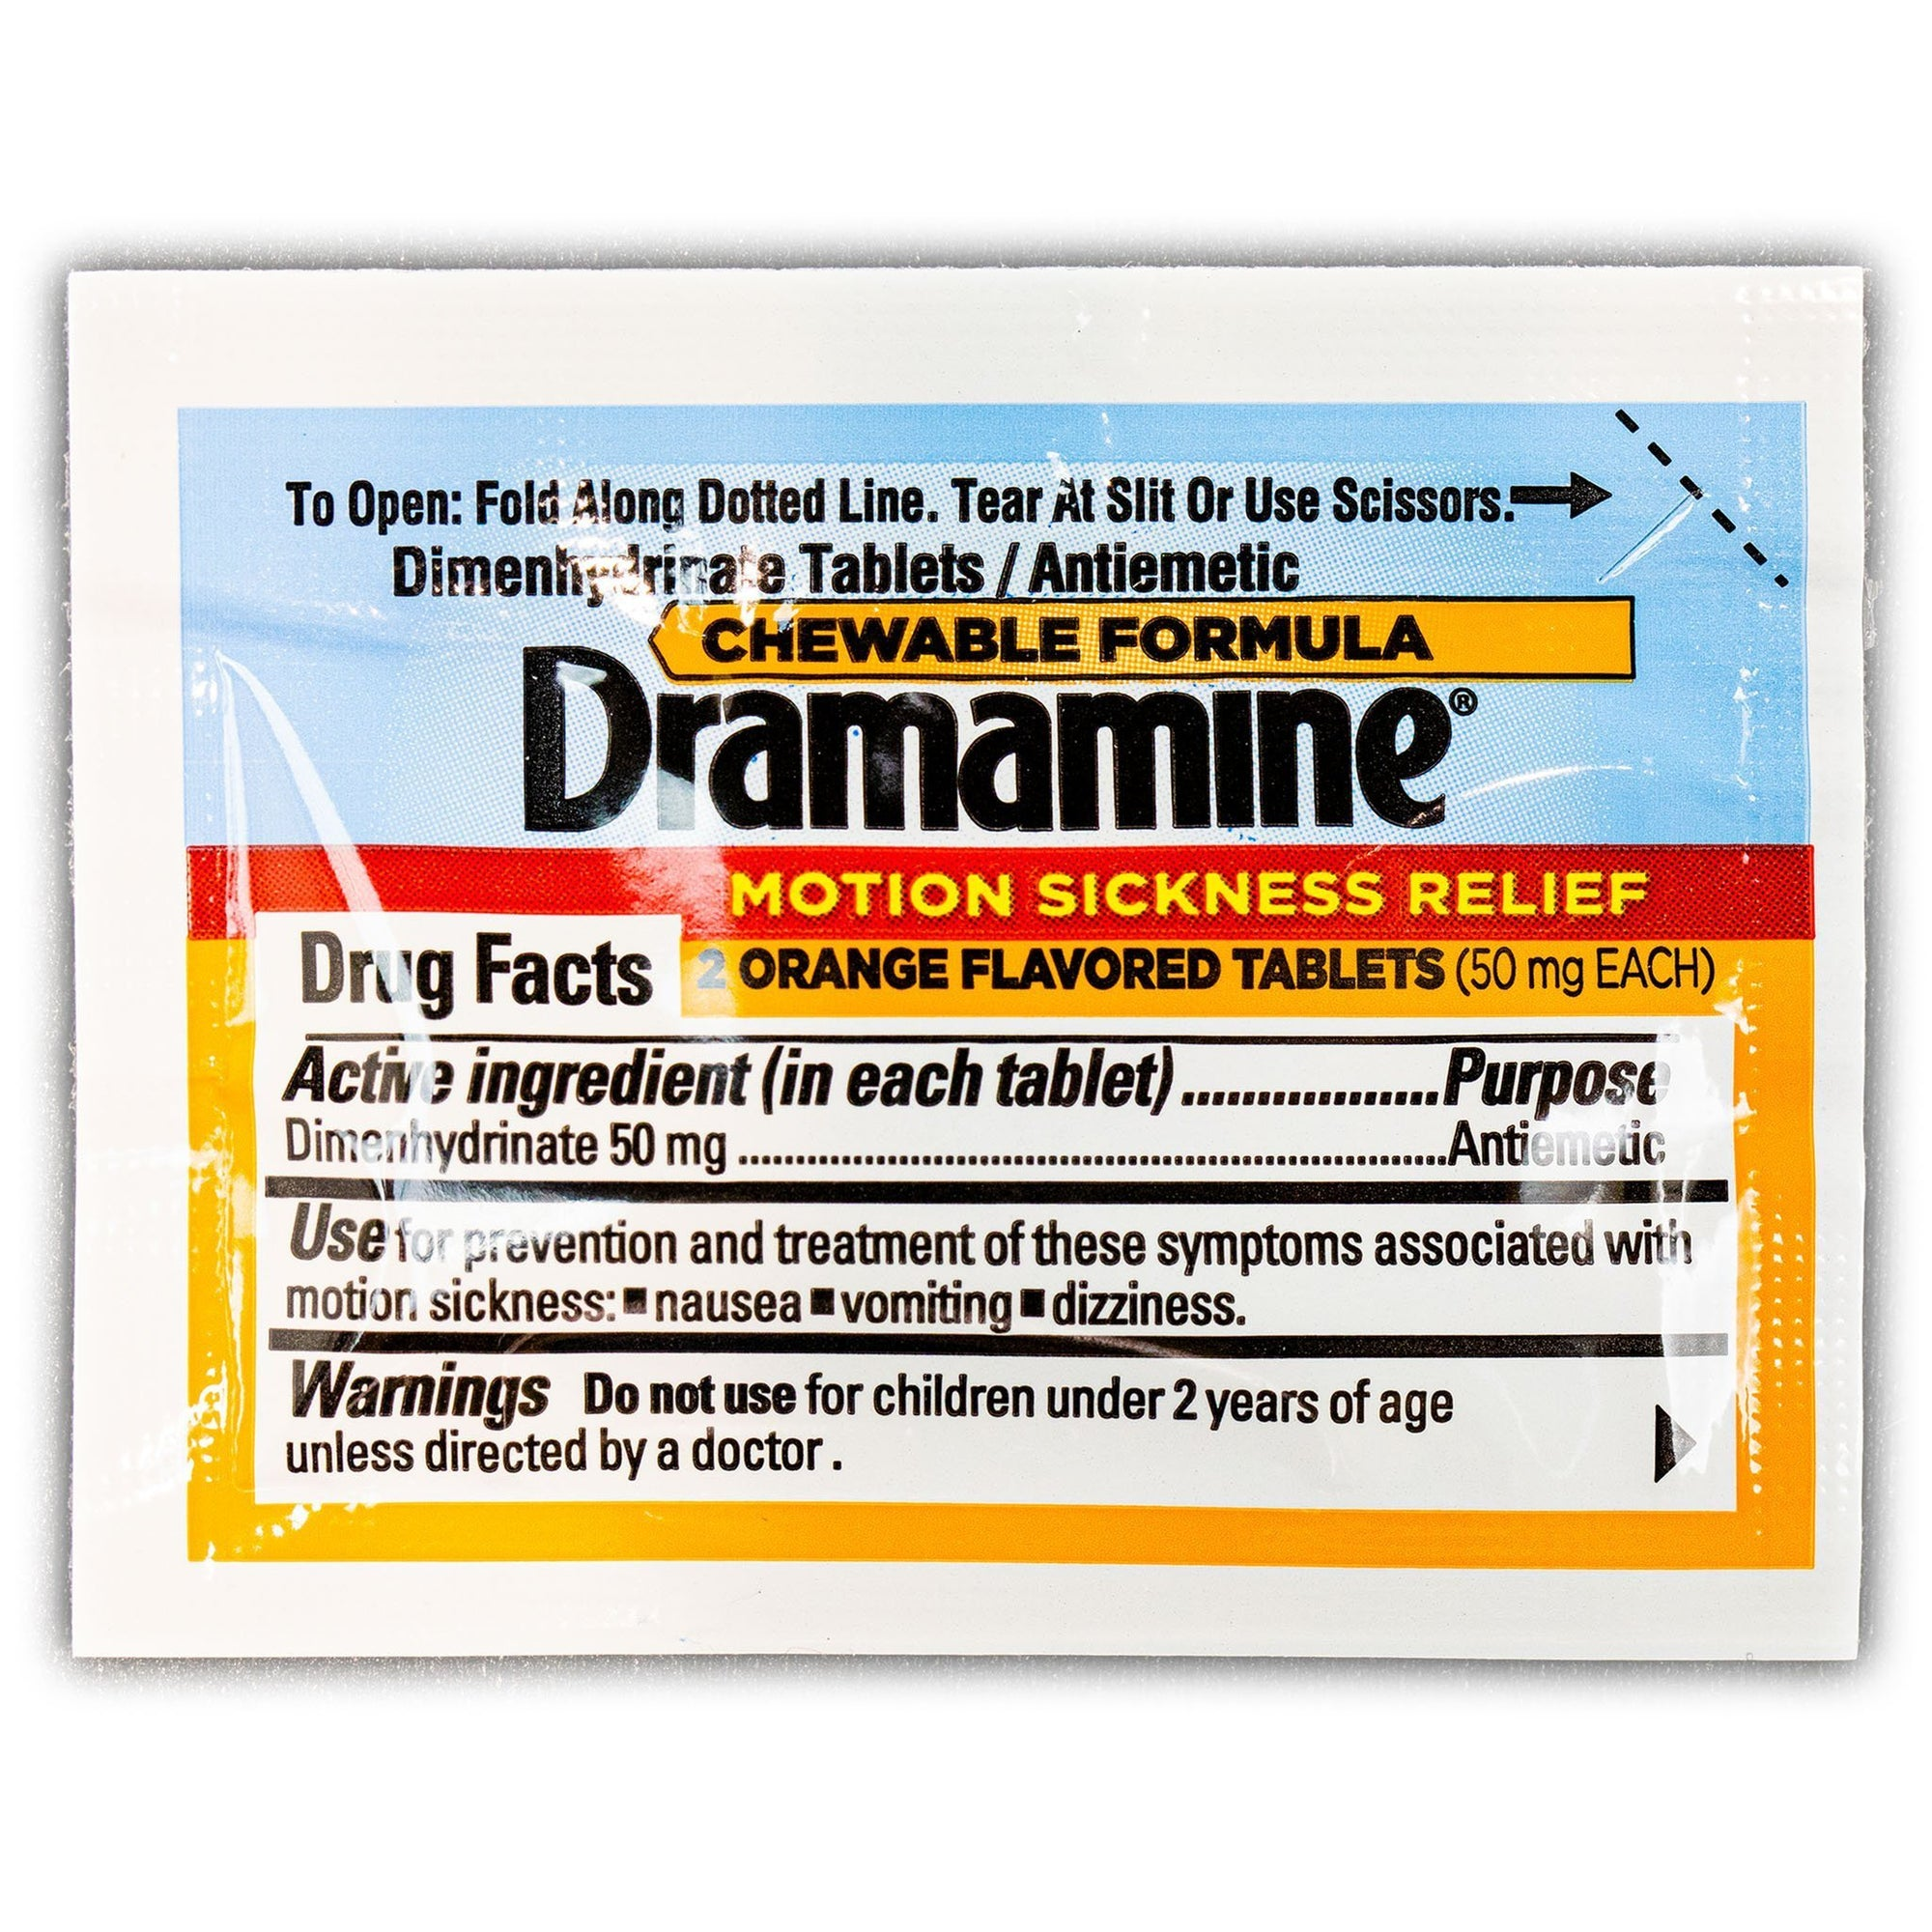 Dramamine Nausea Relief Packet